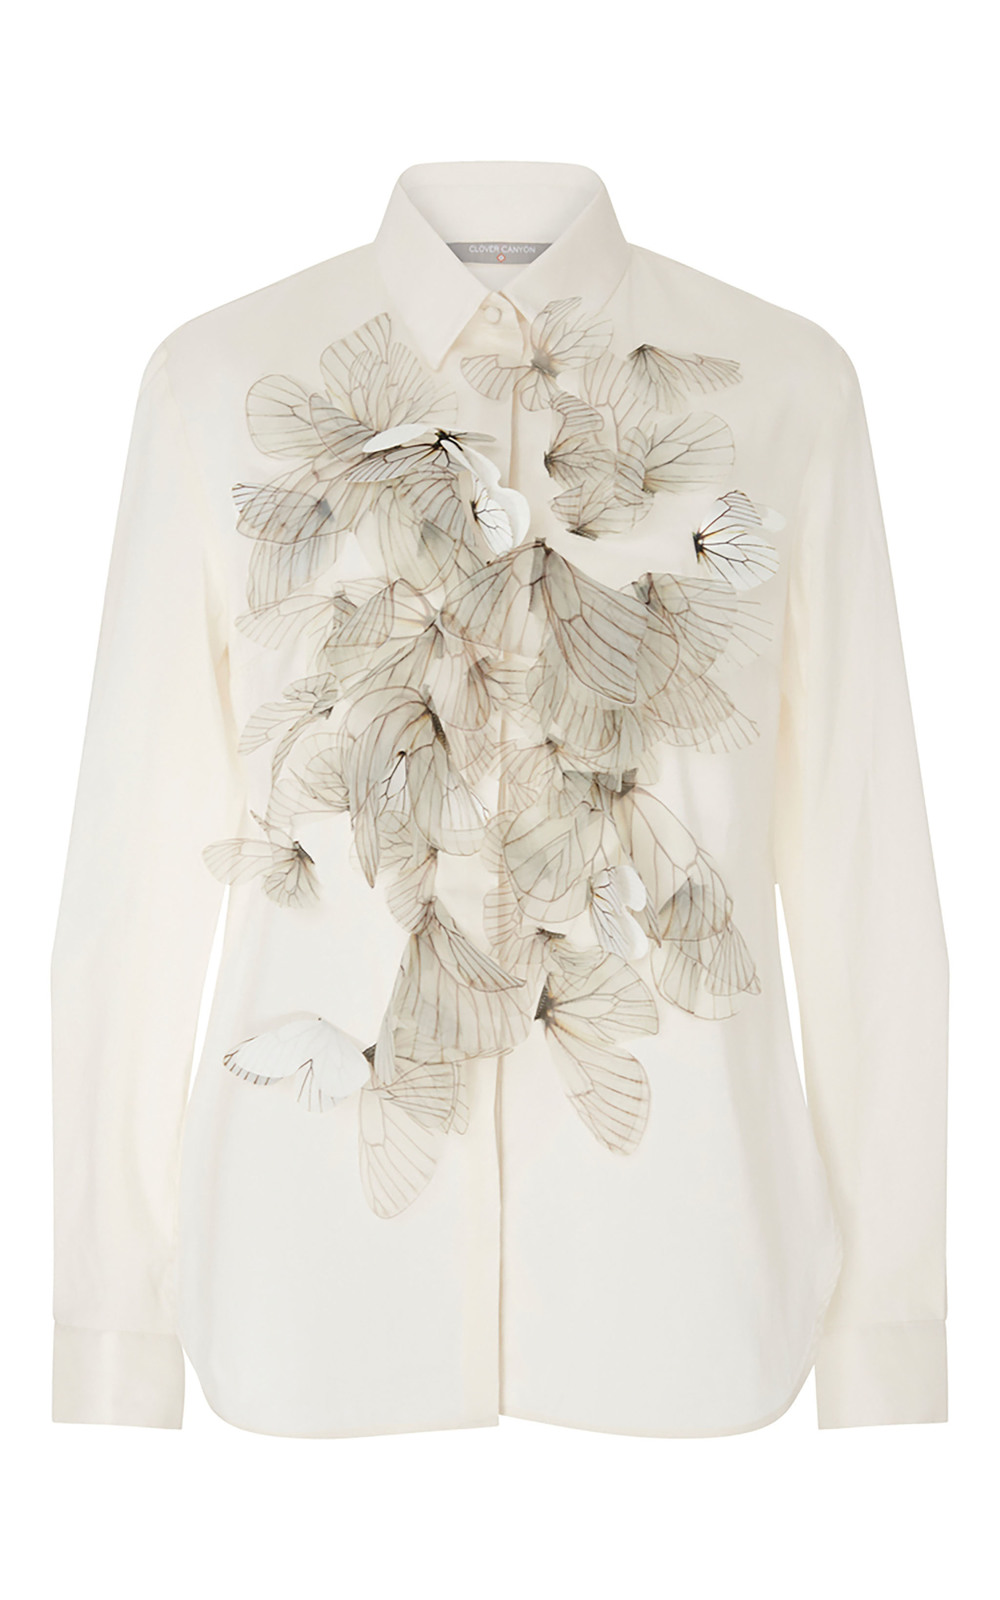 Clover Canyon Shirt with 3D Butterfly Embellishment US$395